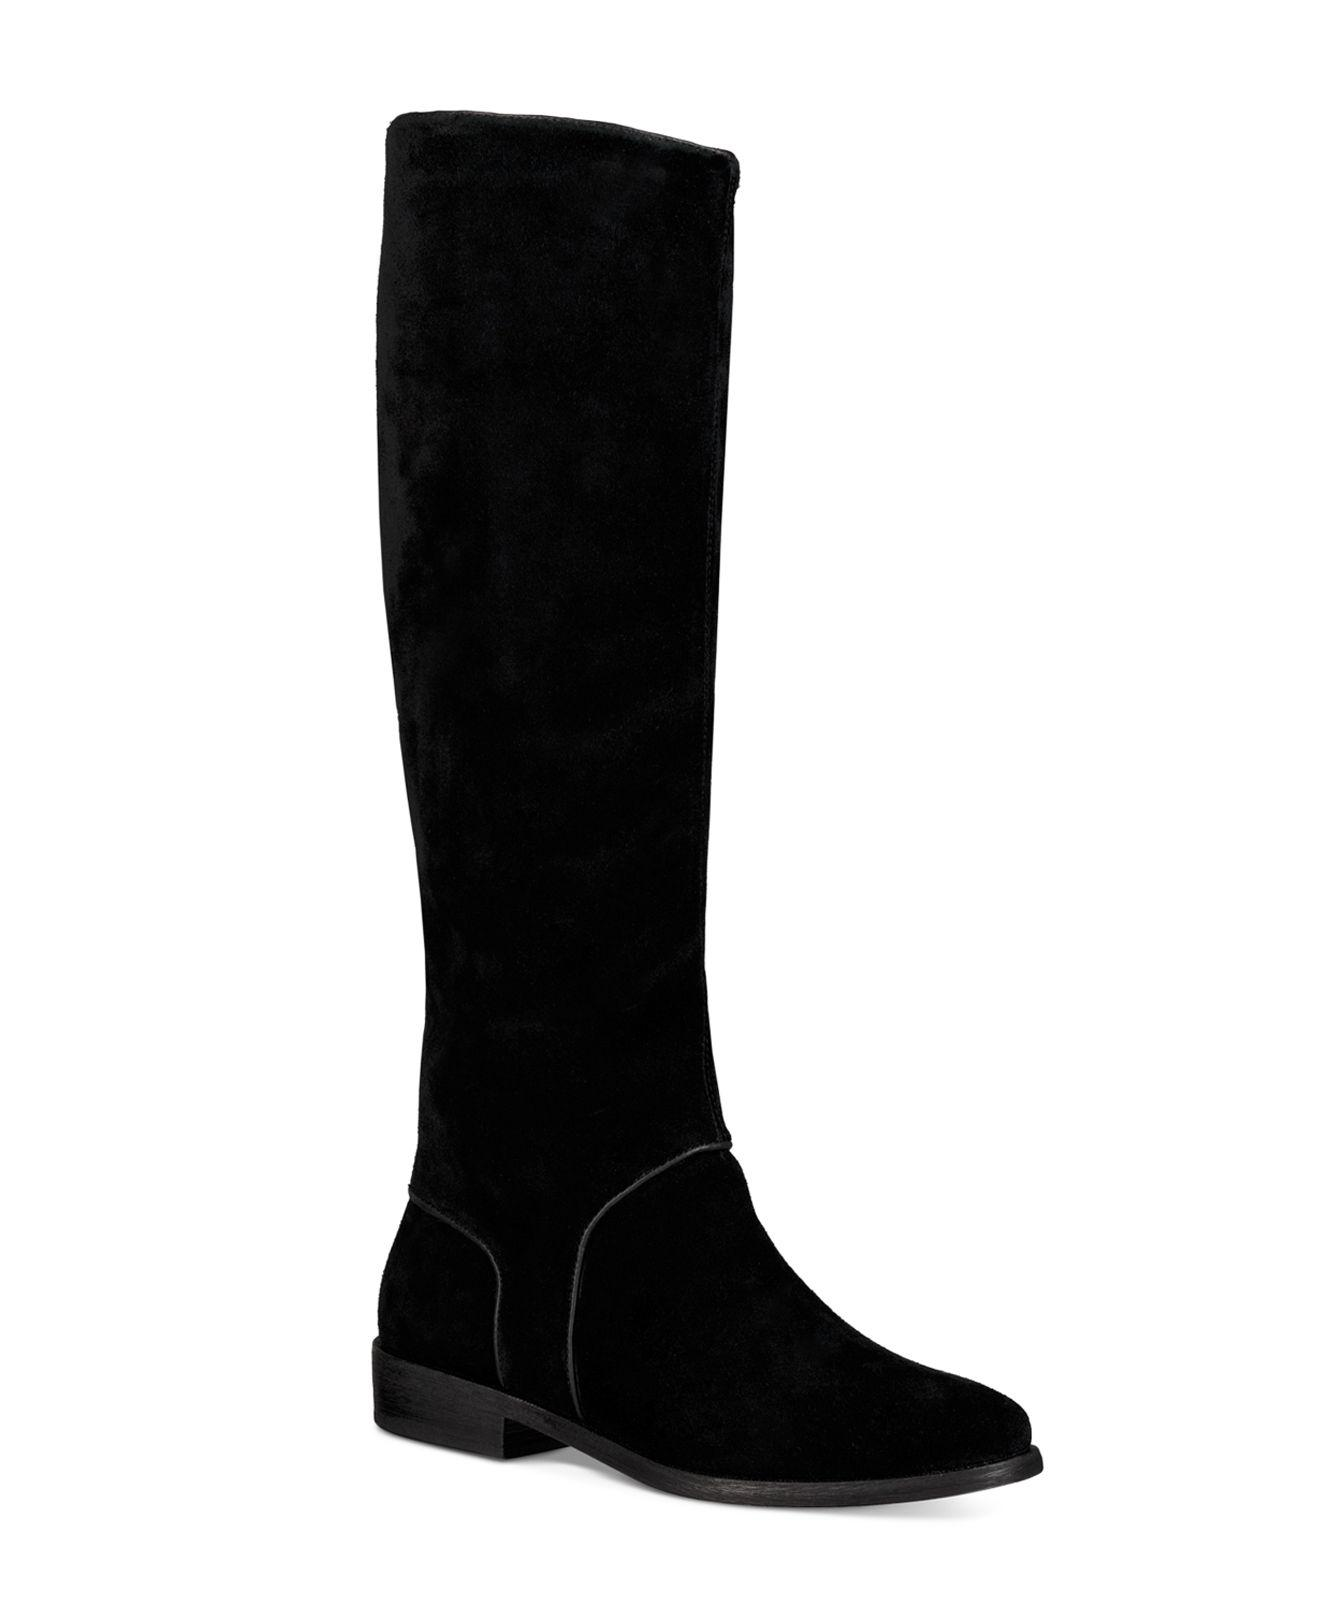 Tom Ford Shoes Boots